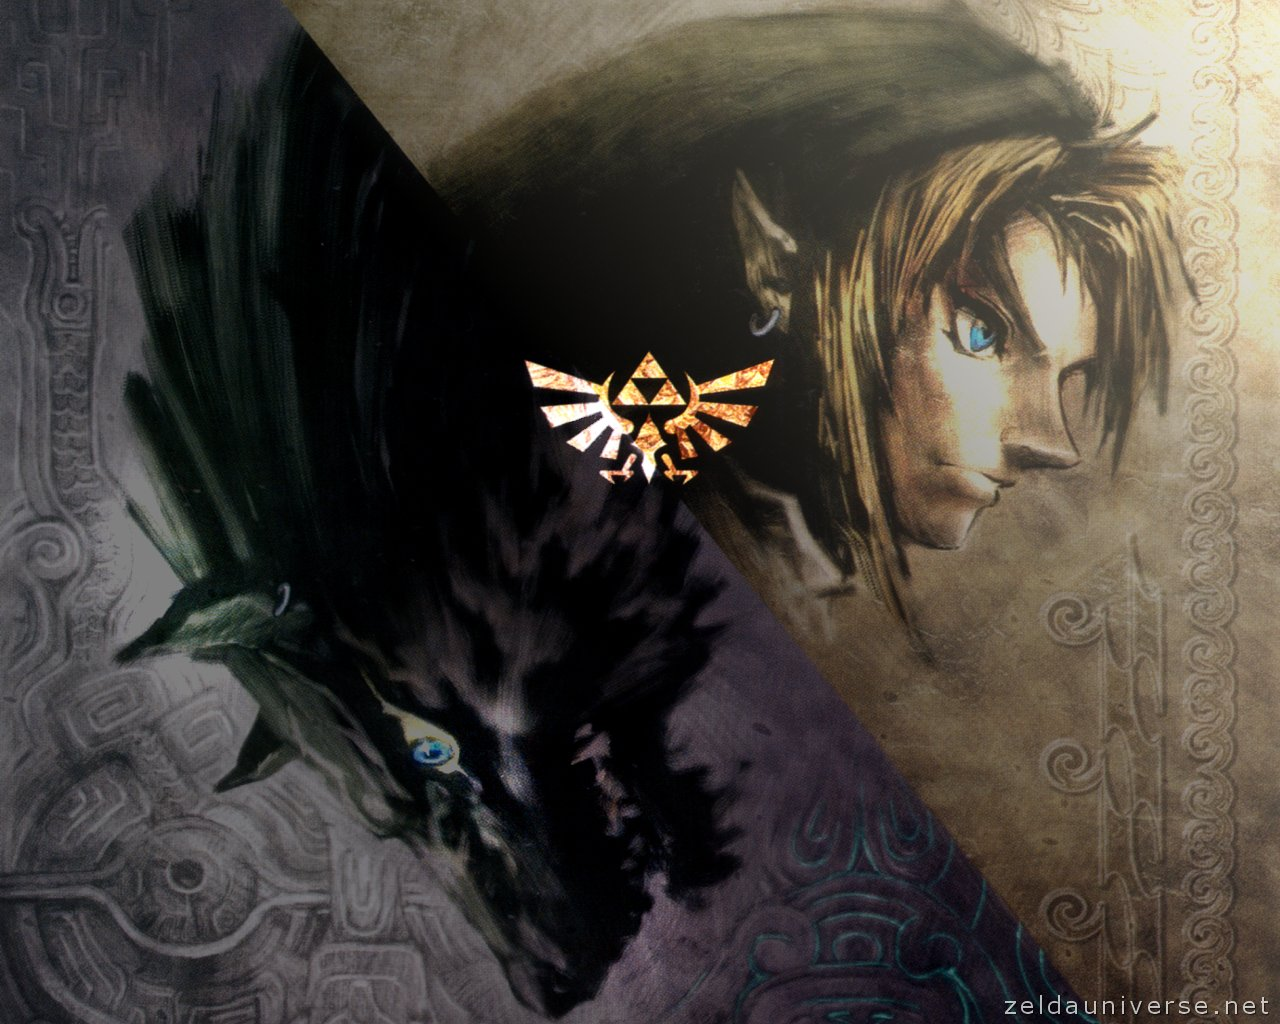 http://3.bp.blogspot.com/-Ae6j-AVGOIo/UQLdKx7Q-dI/AAAAAAAAAUM/1Mo_sdFtHPE/s1600/The_Legend_of_Zelda_Twilight_Princess_wii_wallpaper1.jpg